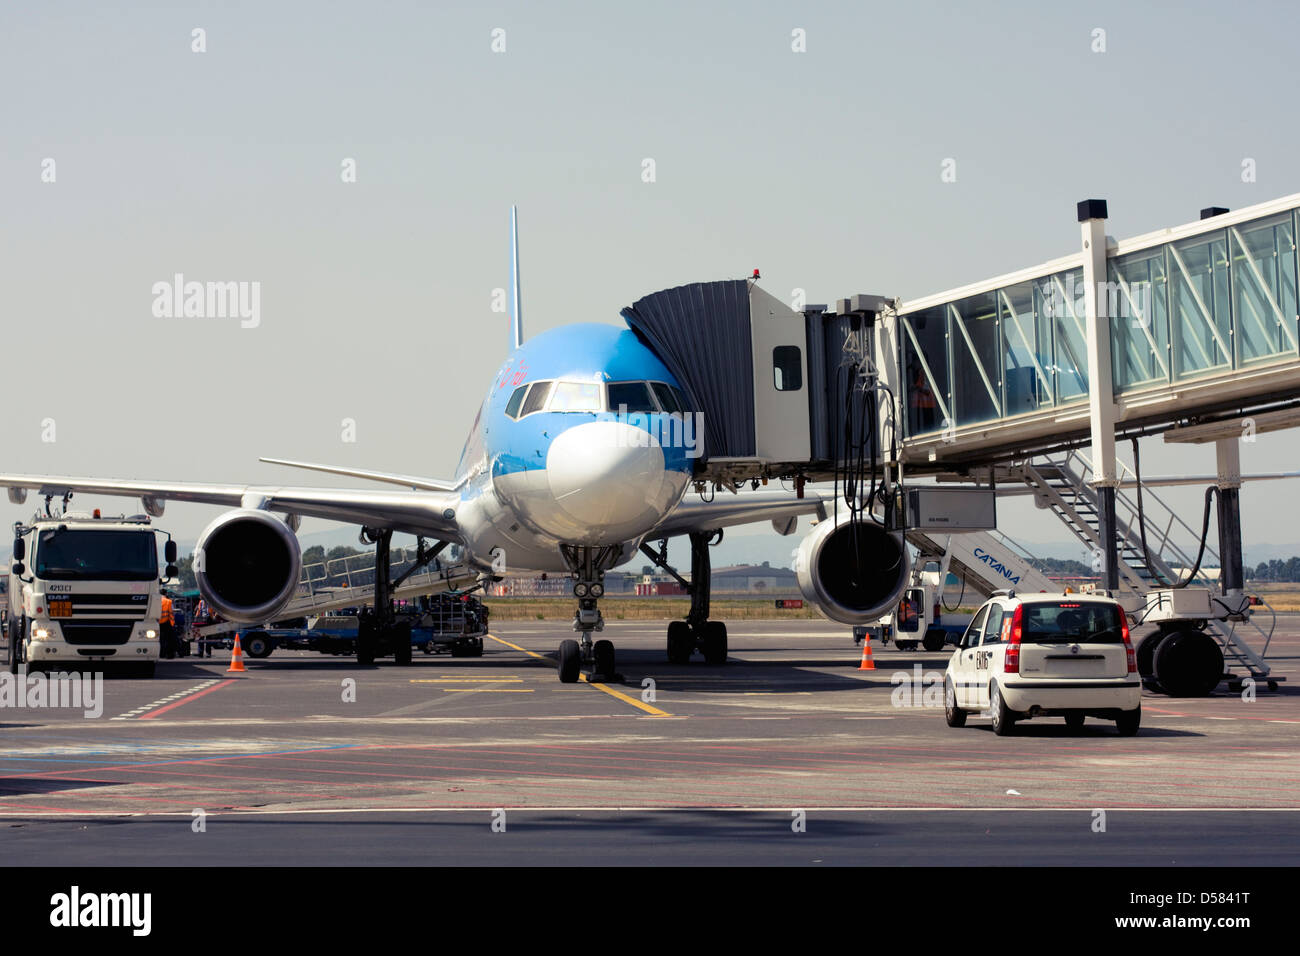 Thomson Airways Boeing 757-28A at the gate of Catania Fontanarossa Airport, Catania, Sicily, Italy Stock Photo